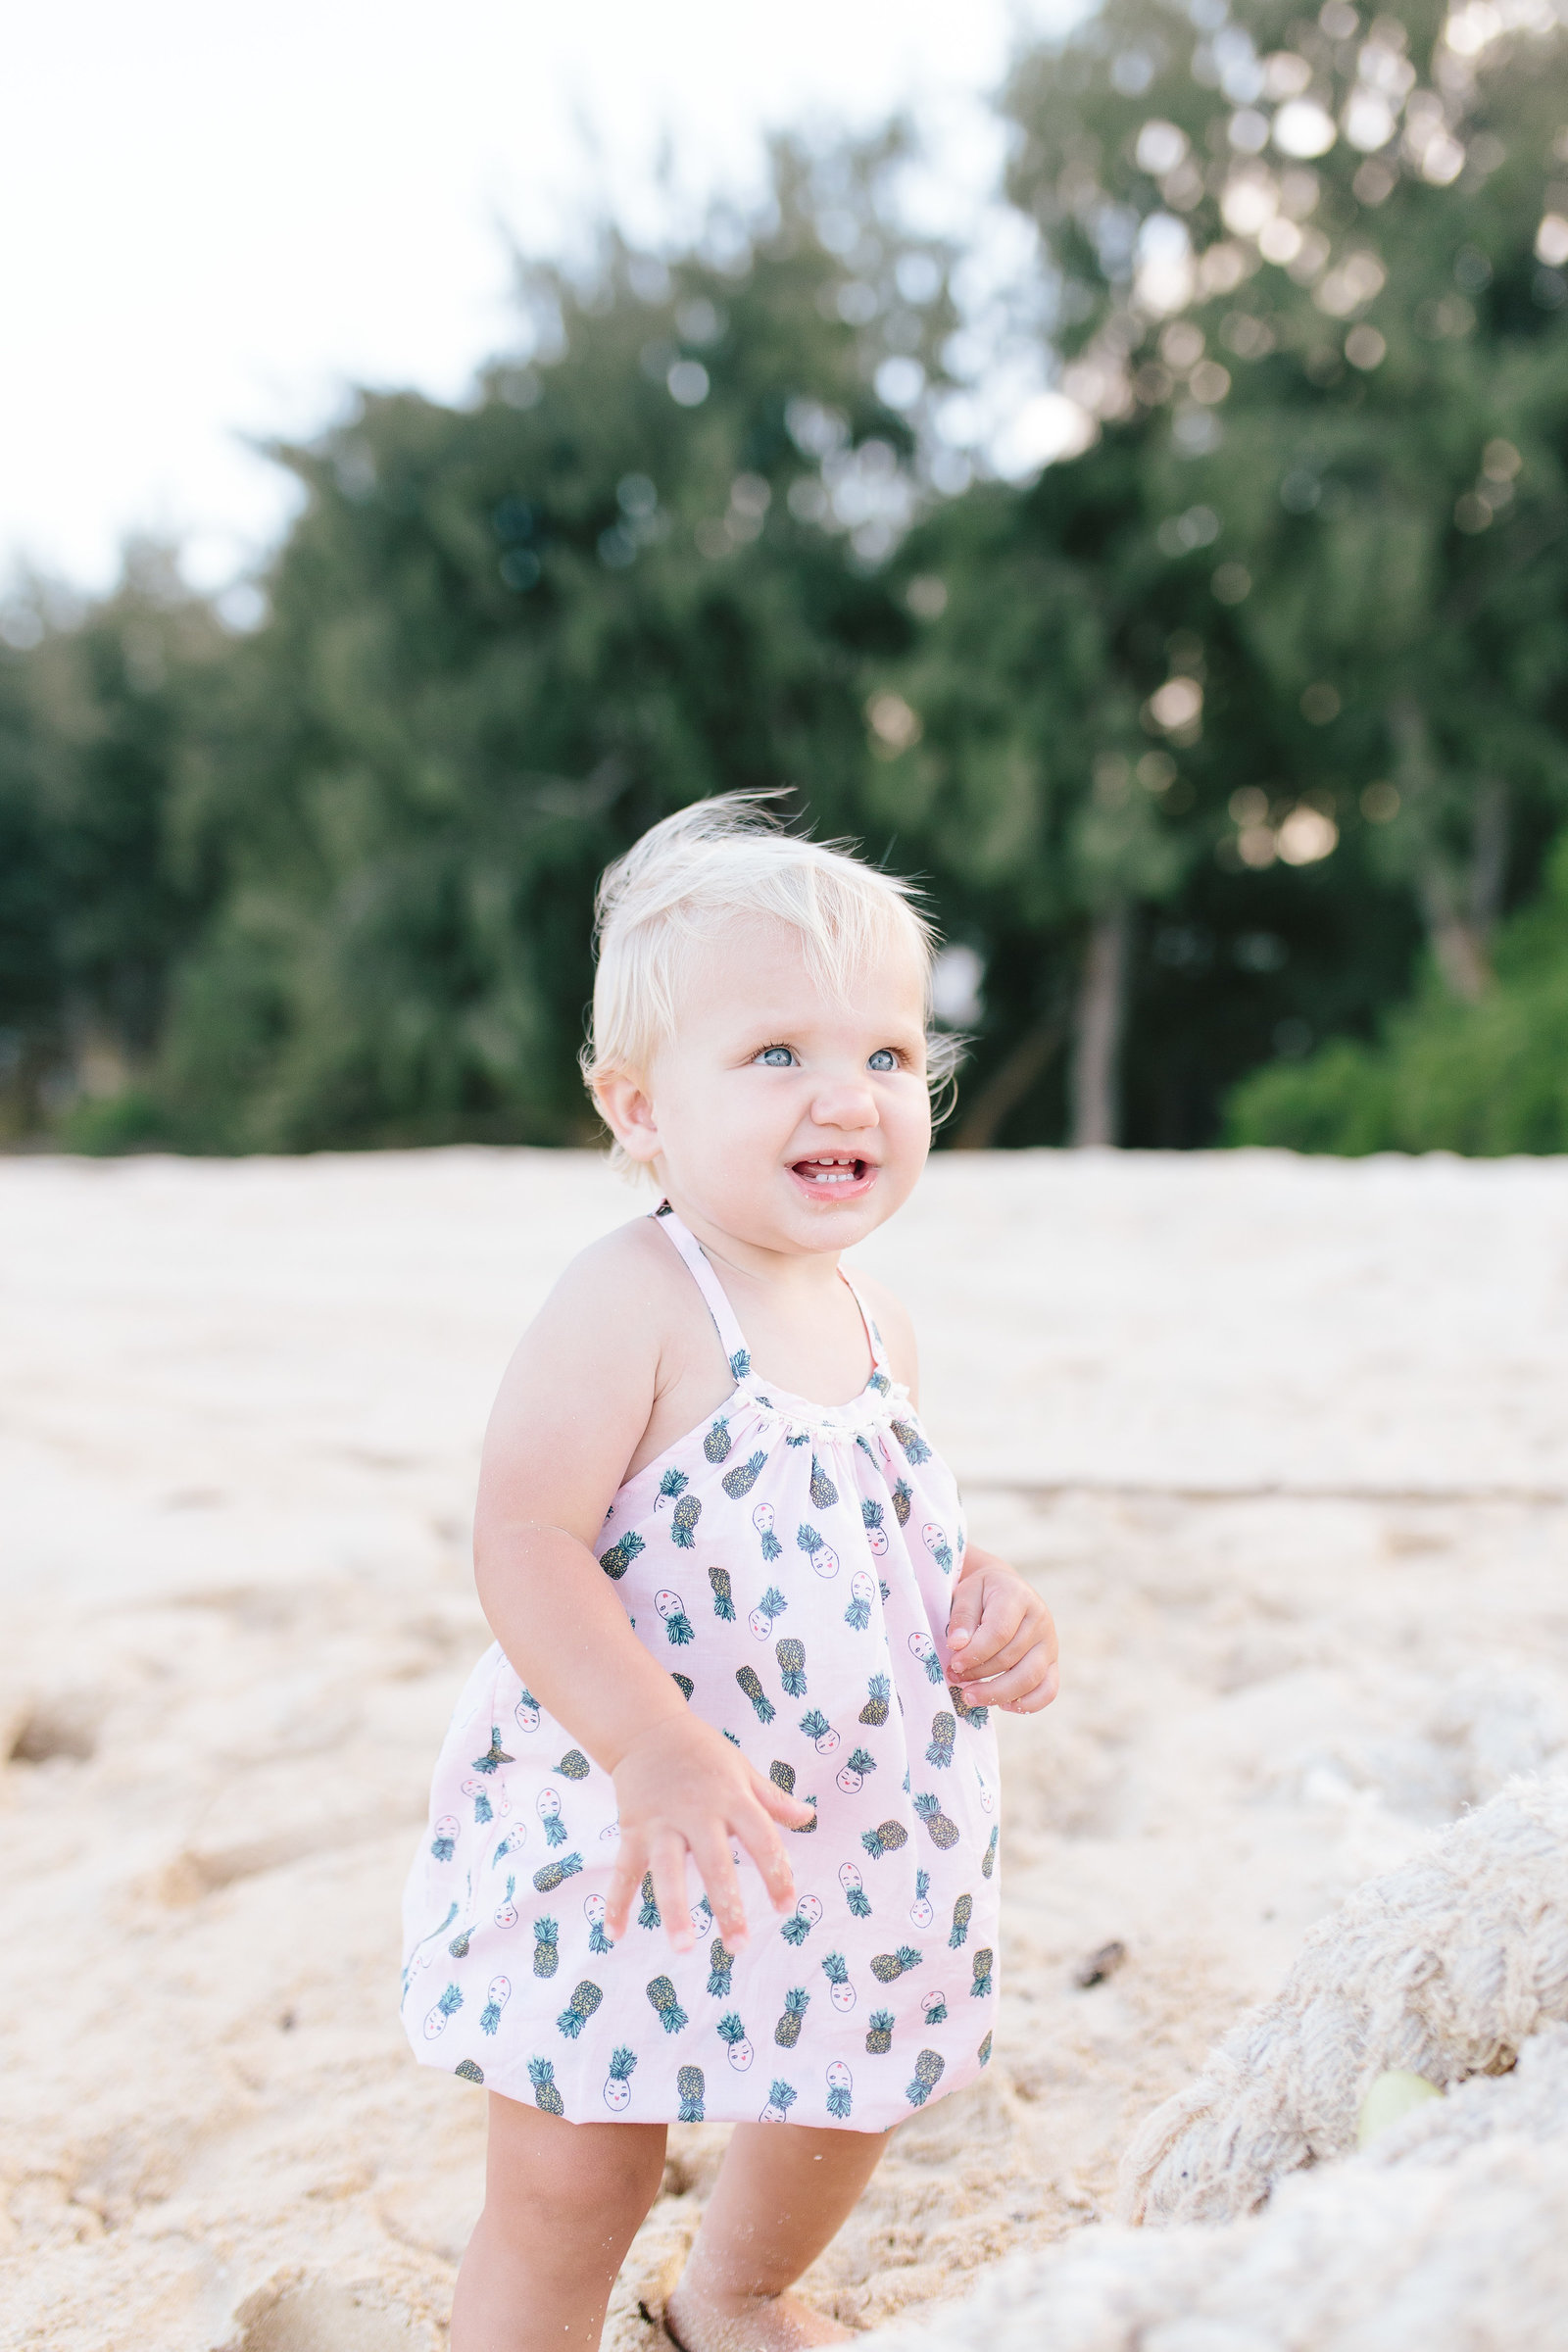 Oahu, Hawaii Lifestyle Photographer - Lifestyle Photography - Brooke Flanagan Photography - Little girl on the beach